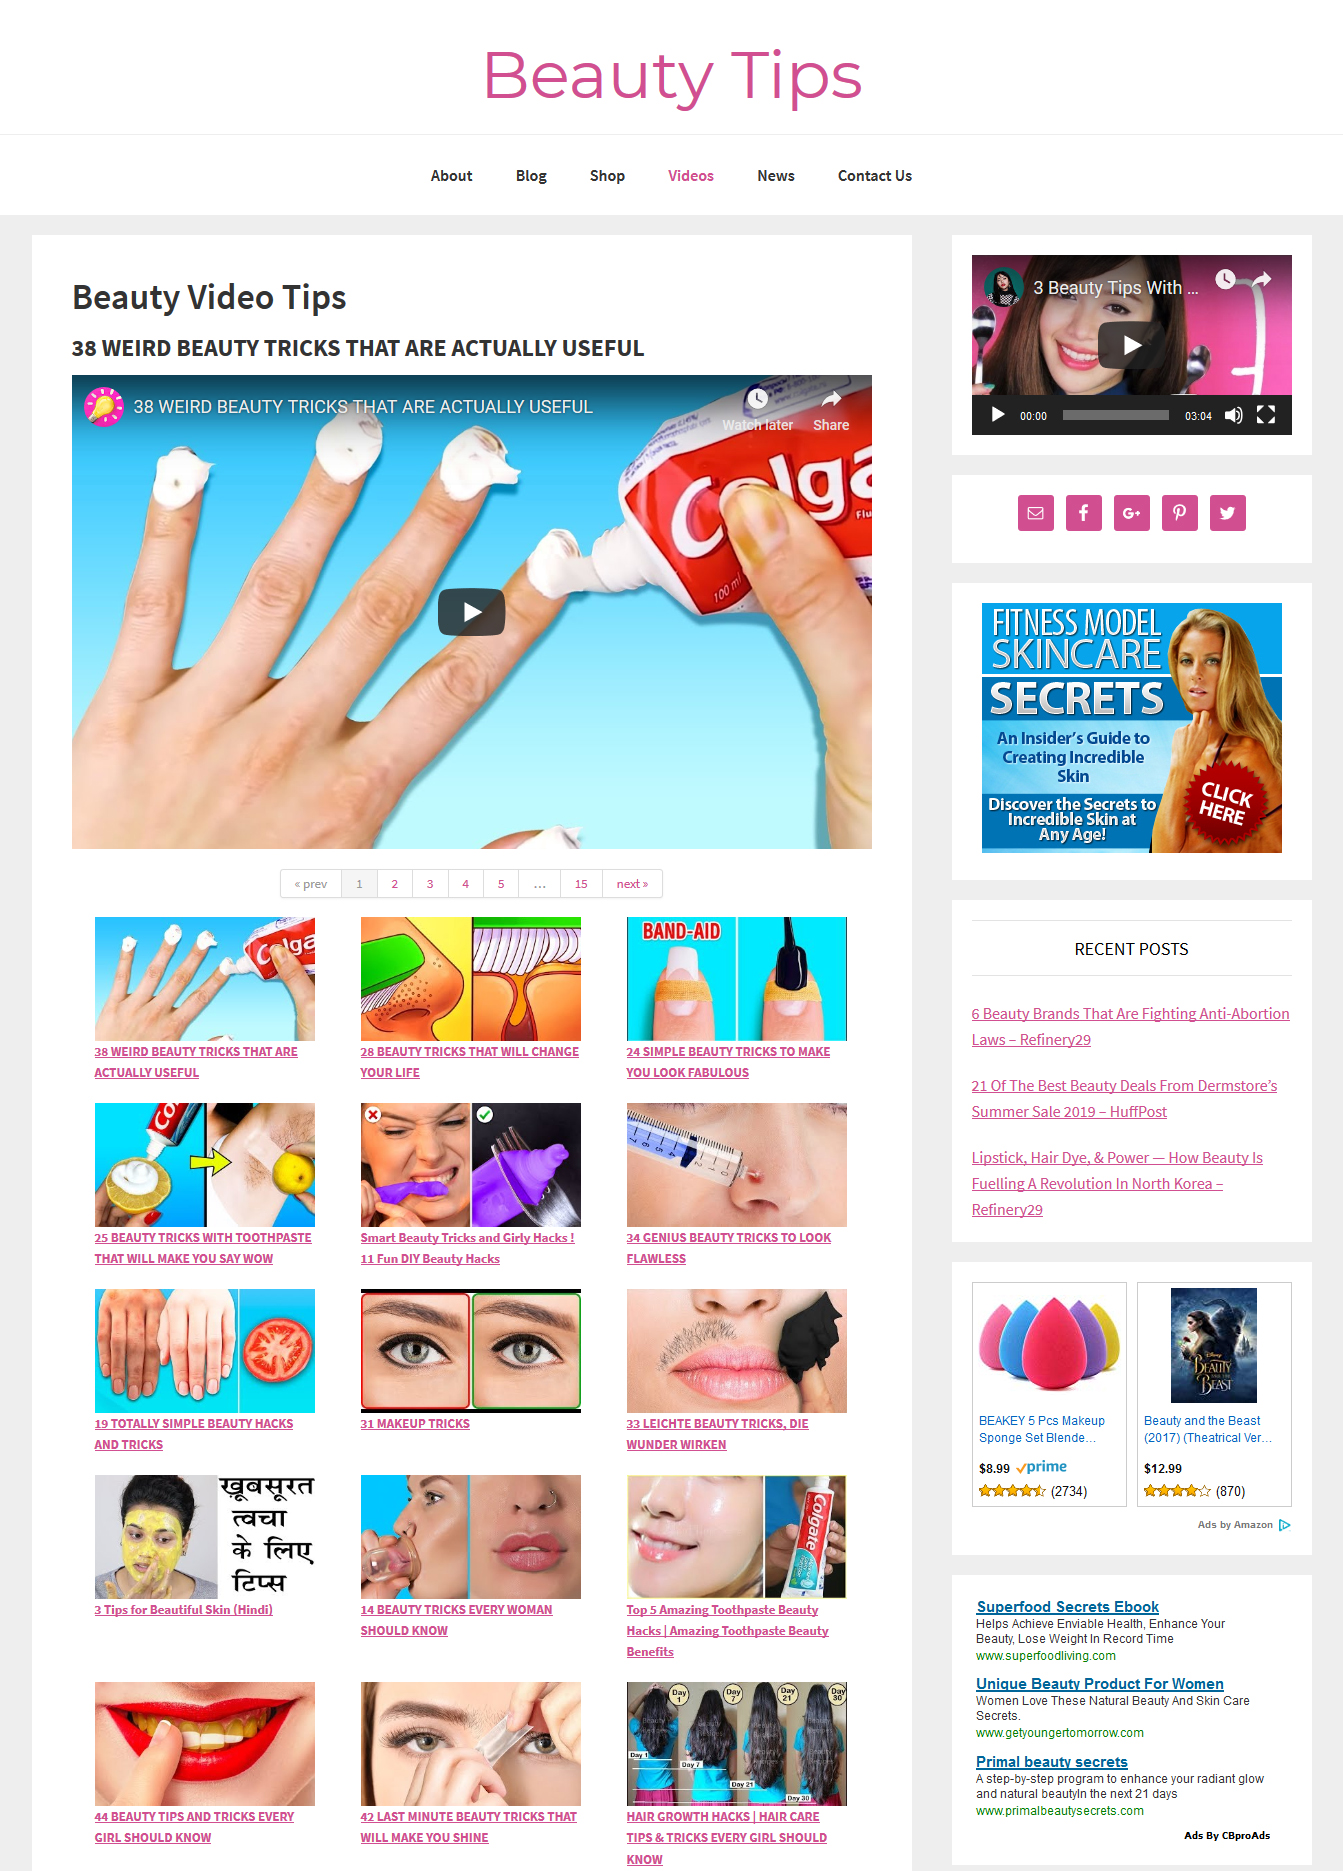 Beauty Tips Website